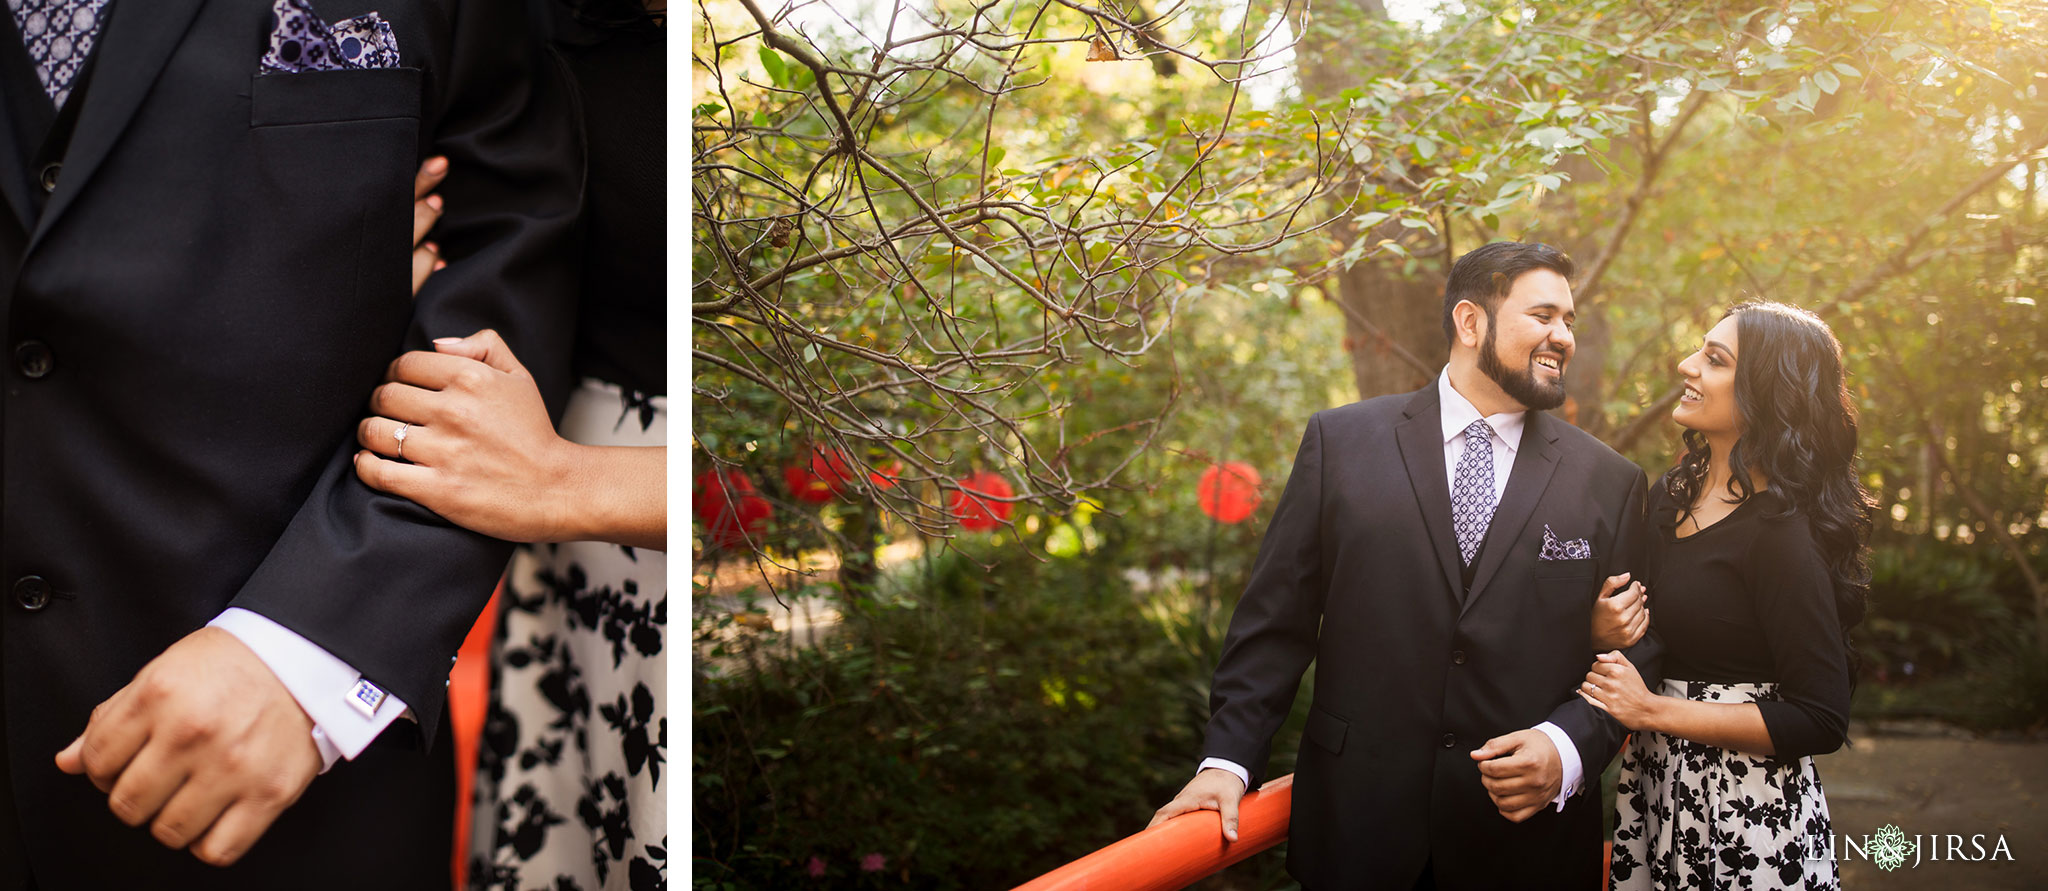 005 descanso gardens los angeles county engagement session